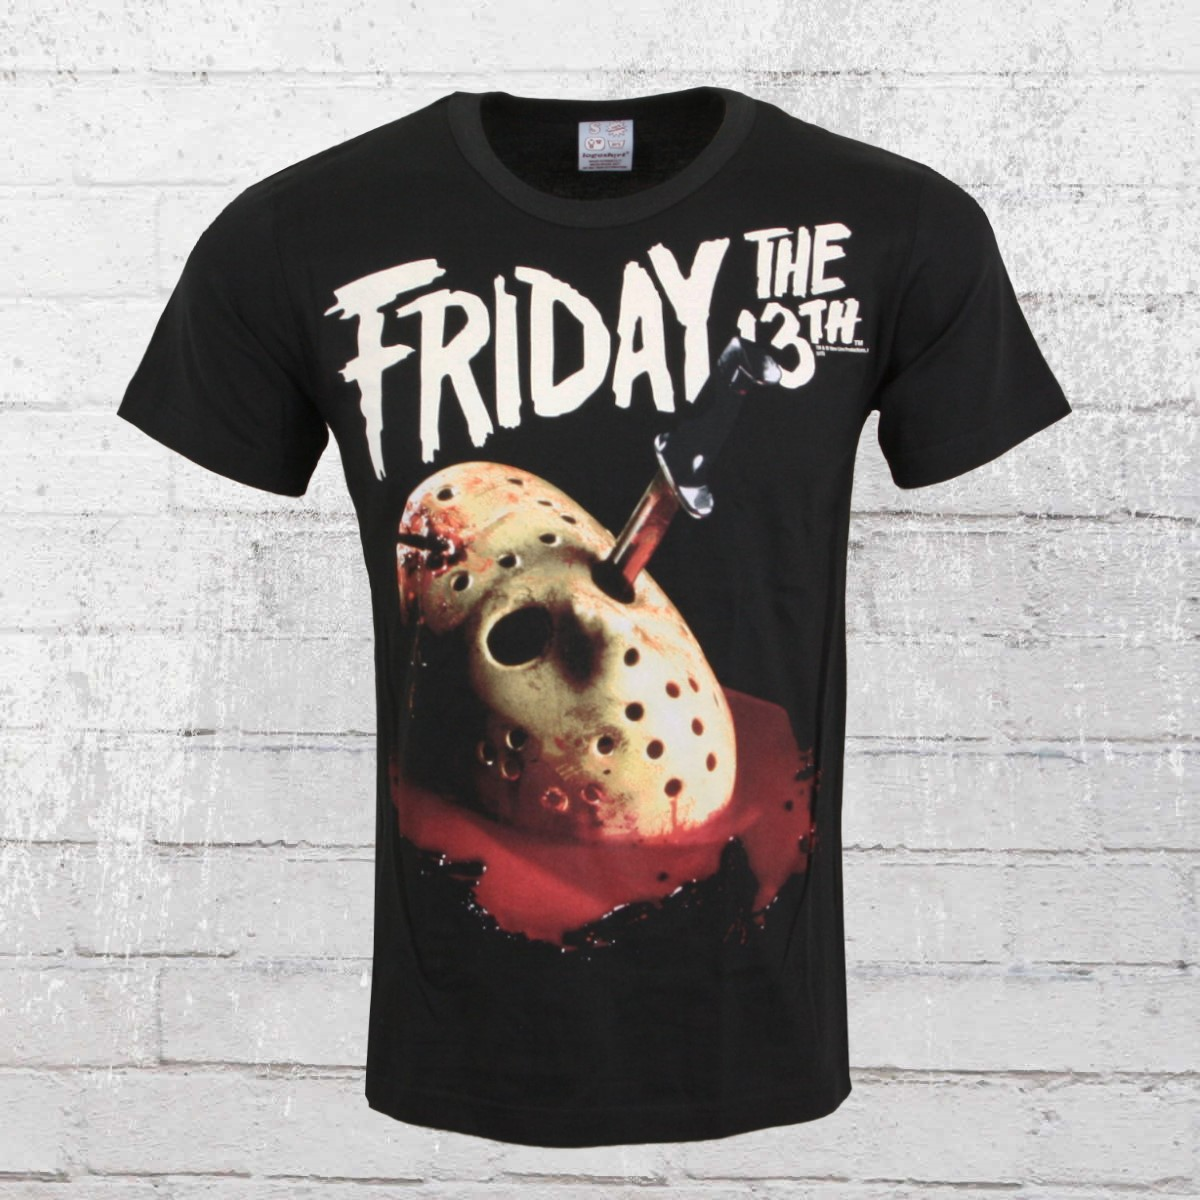 Order now   Logoshirt Male T-Shirt Friday the 13th black 1c0b03b1cf